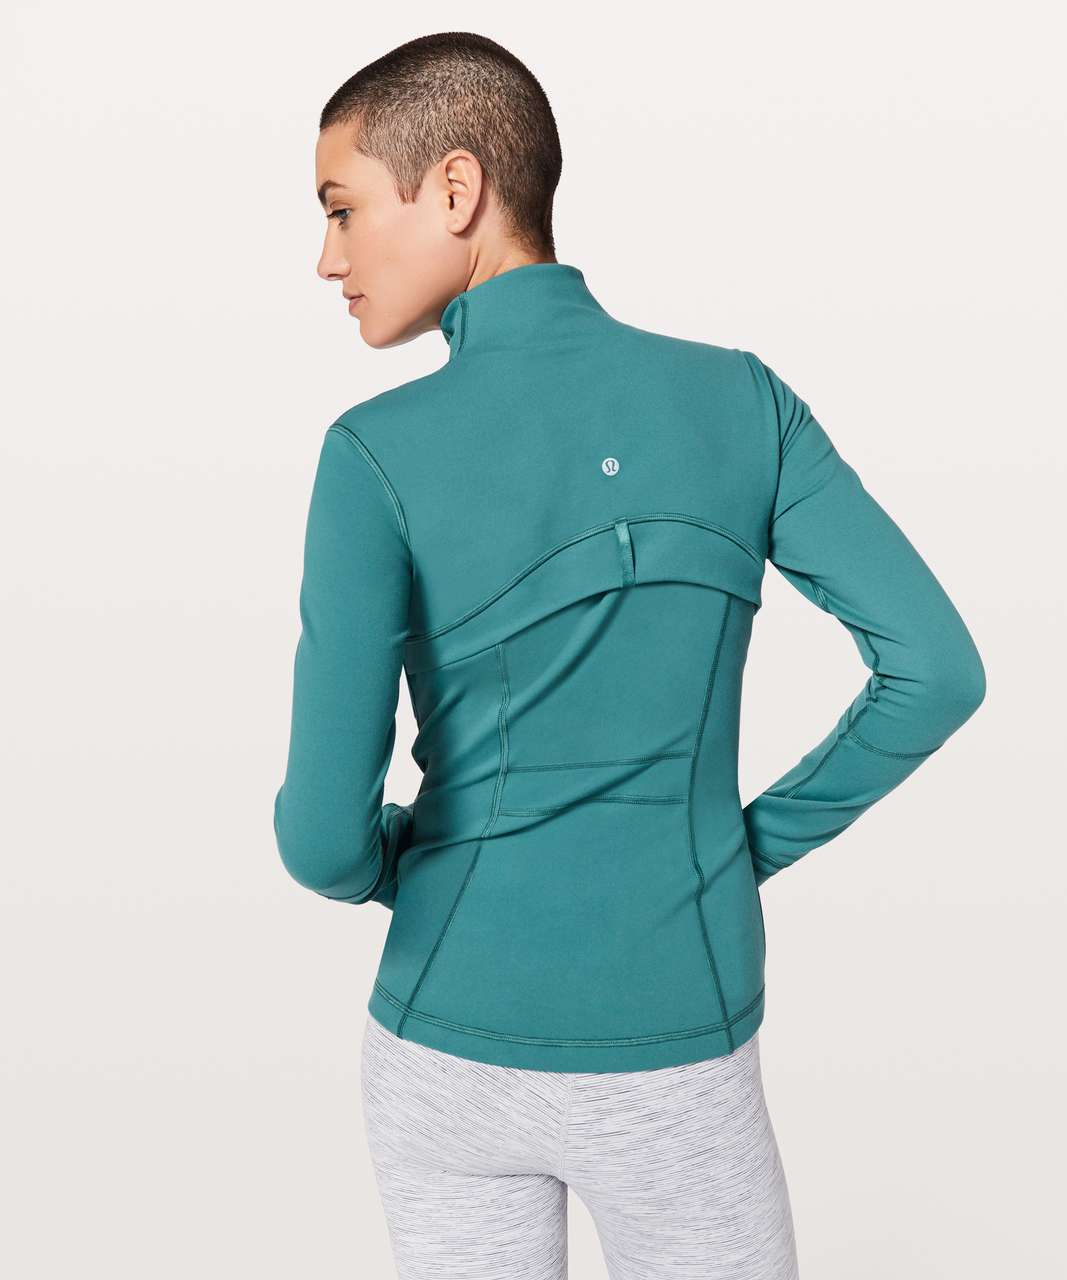 Lululemon Define Jacket - Deep Cove